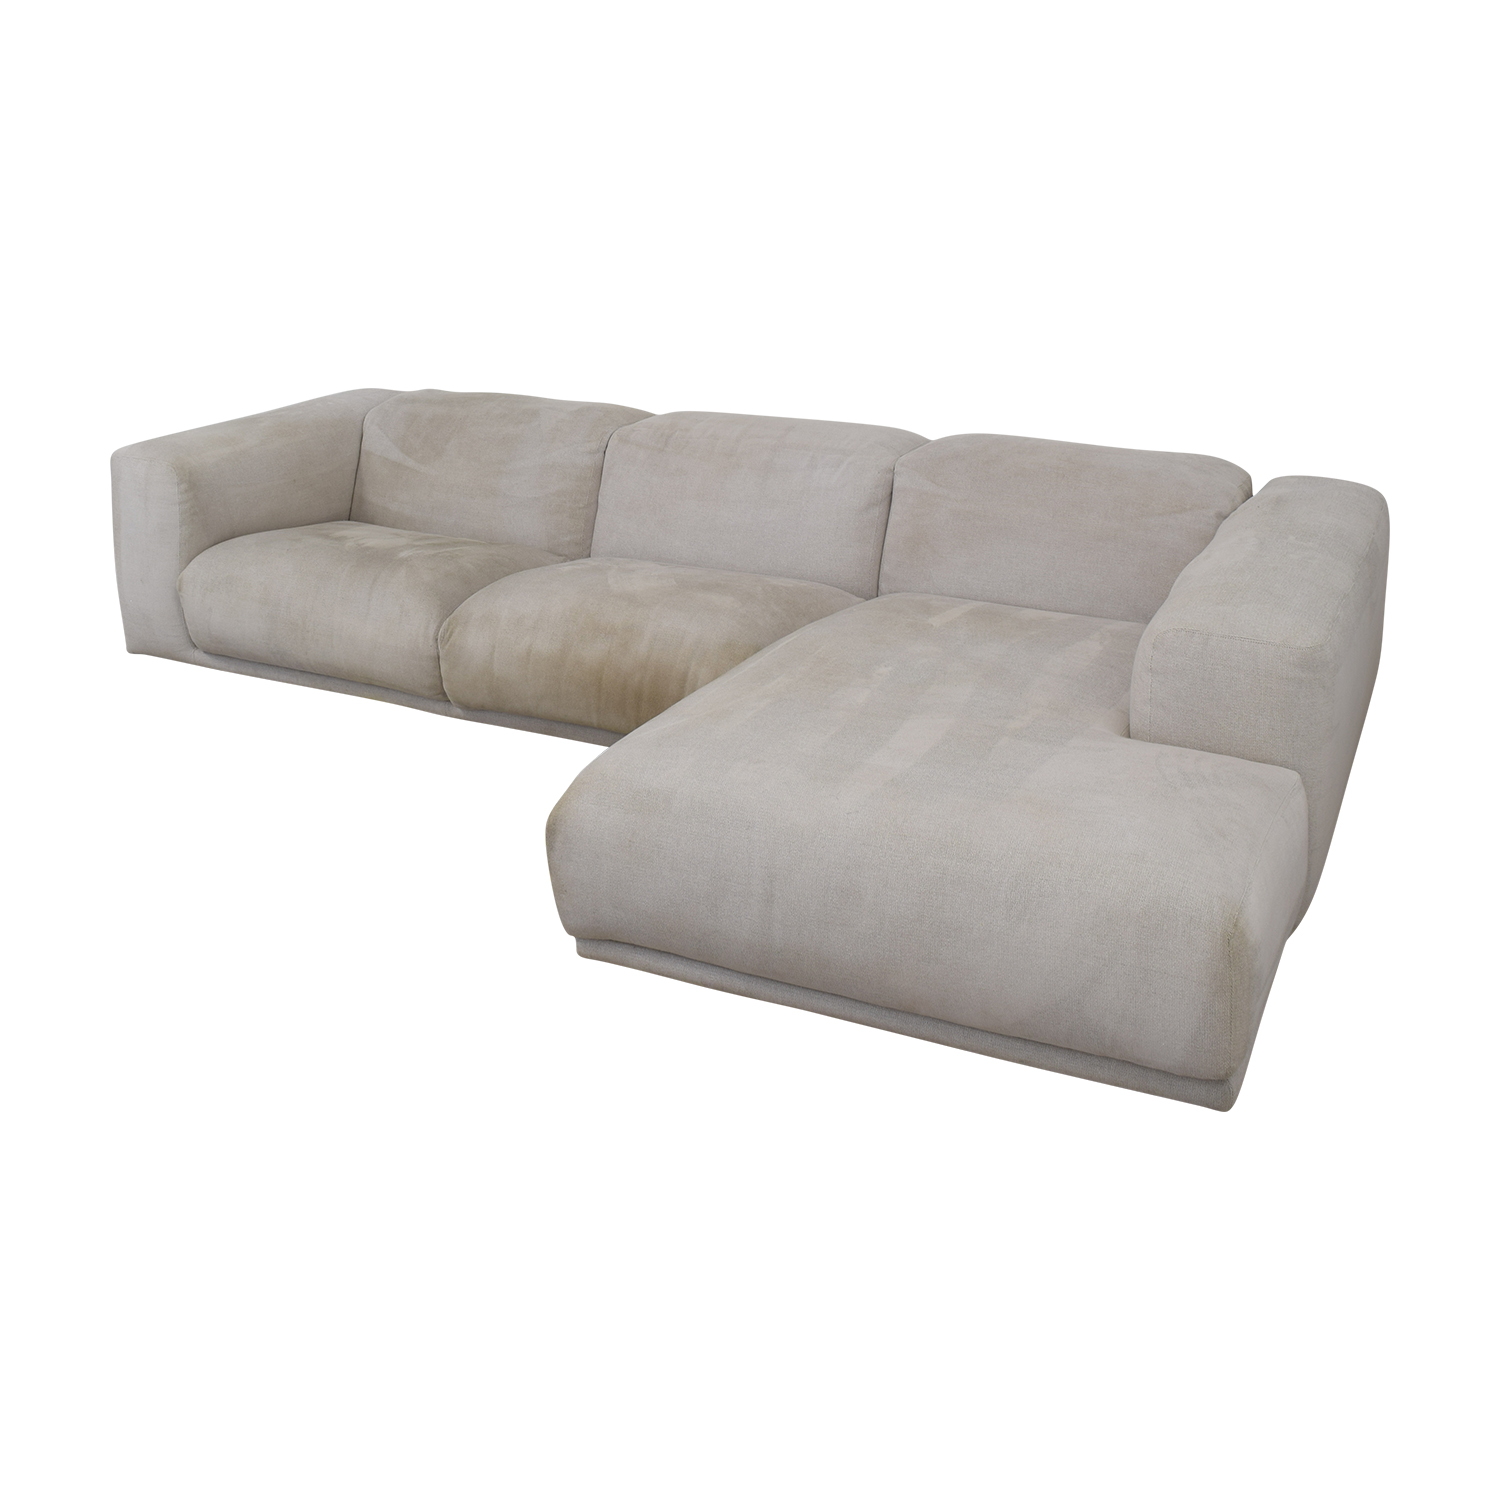 Design Within Reach Design Within Reach Kelston Sectional with Chaise nyc